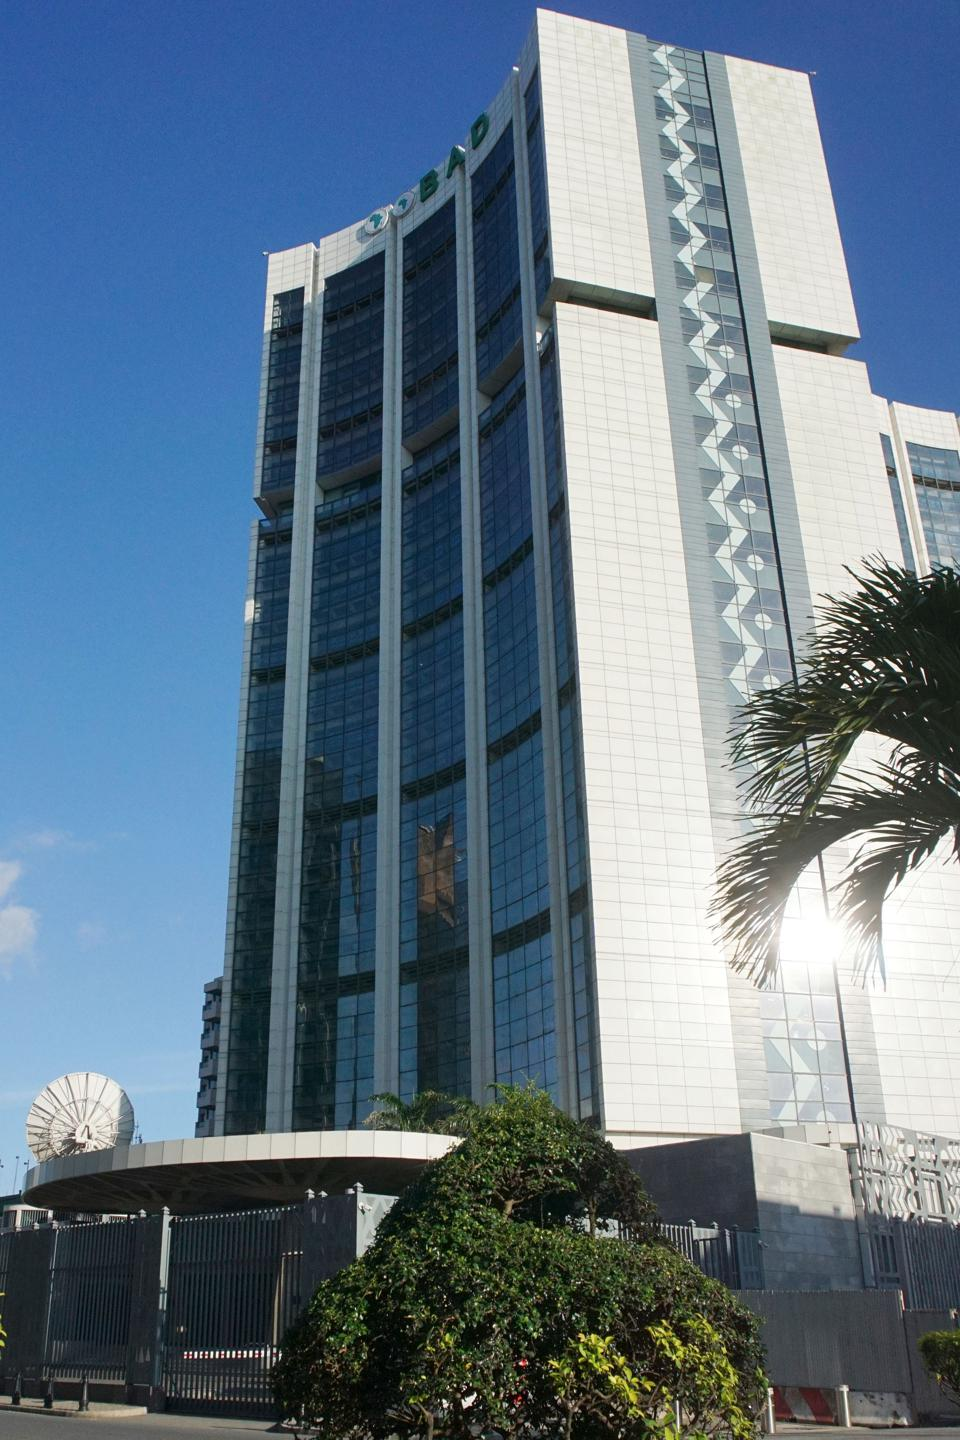 The African Development Bank Group headquarters in Le Plateau, the business district of the Abidjan, capital of the Ivory Coast.